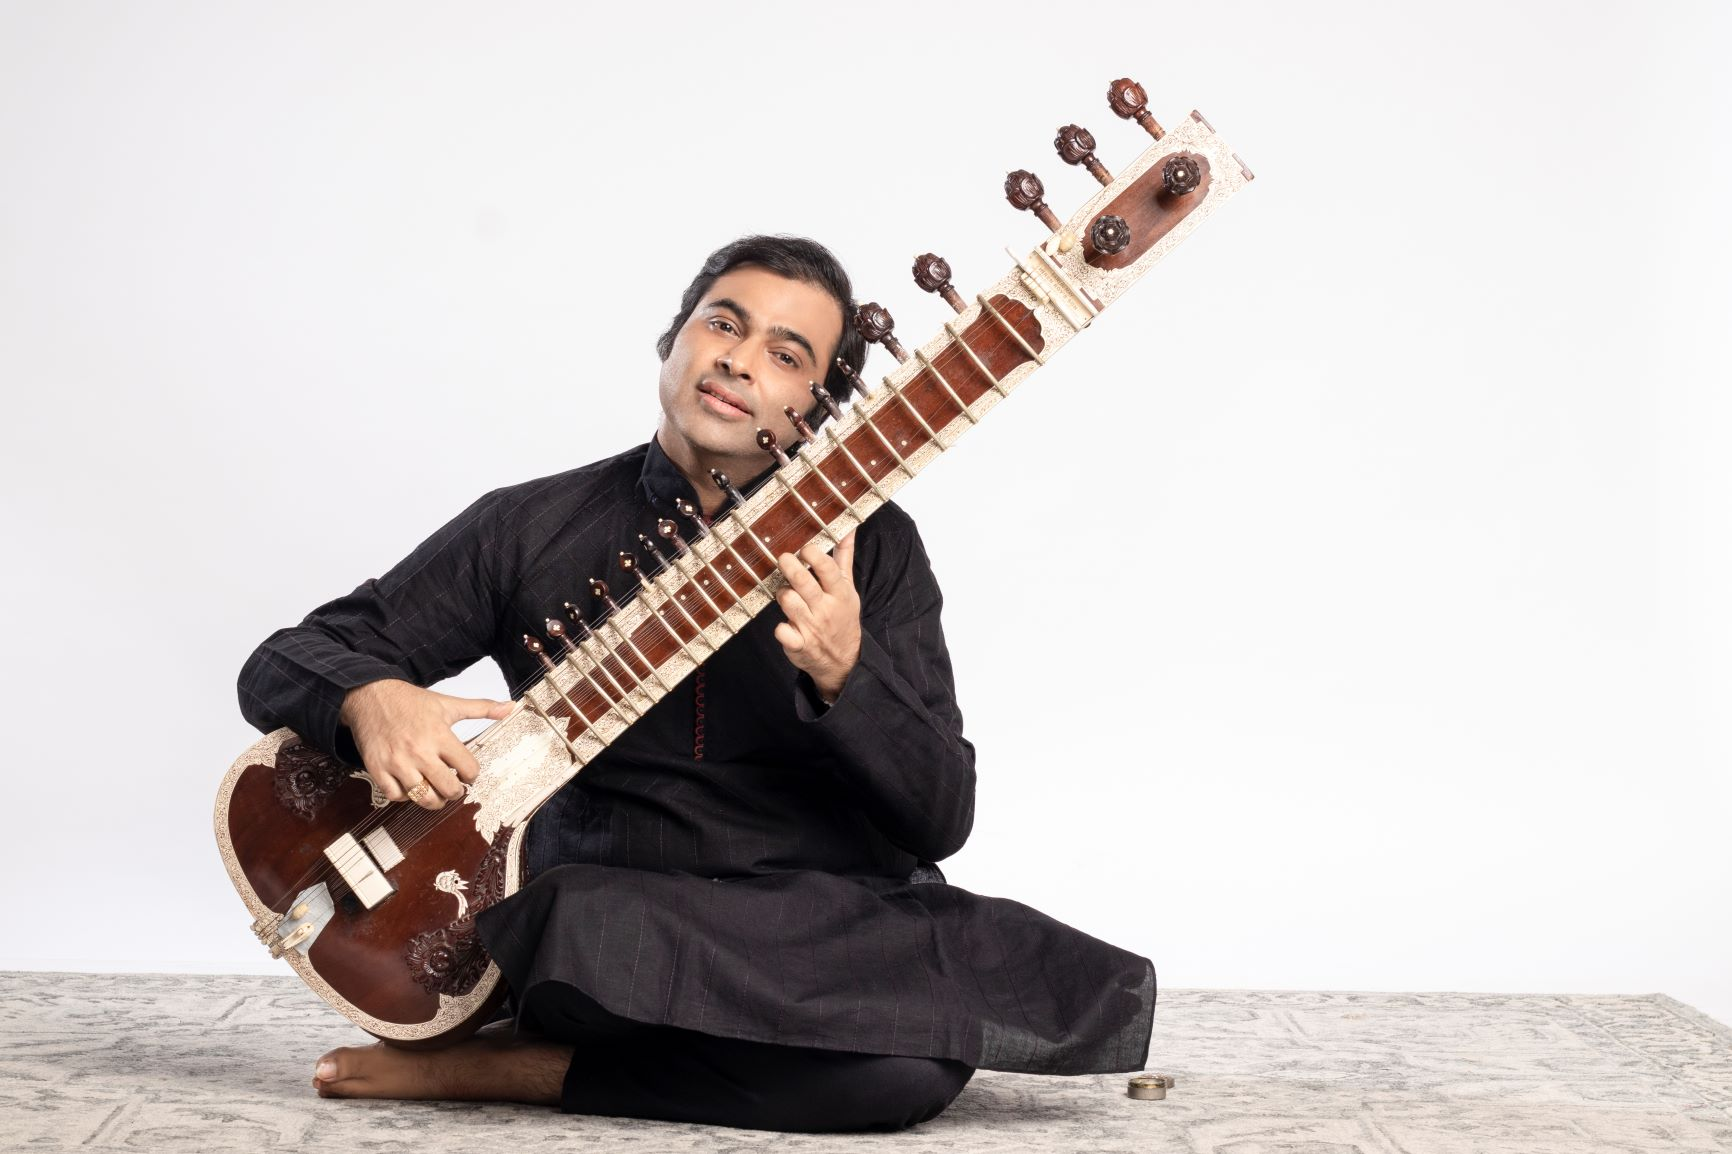 The first series of Musisodes will explore the scope of Indian classical music with sitar maestro Purbayan Chatterjee